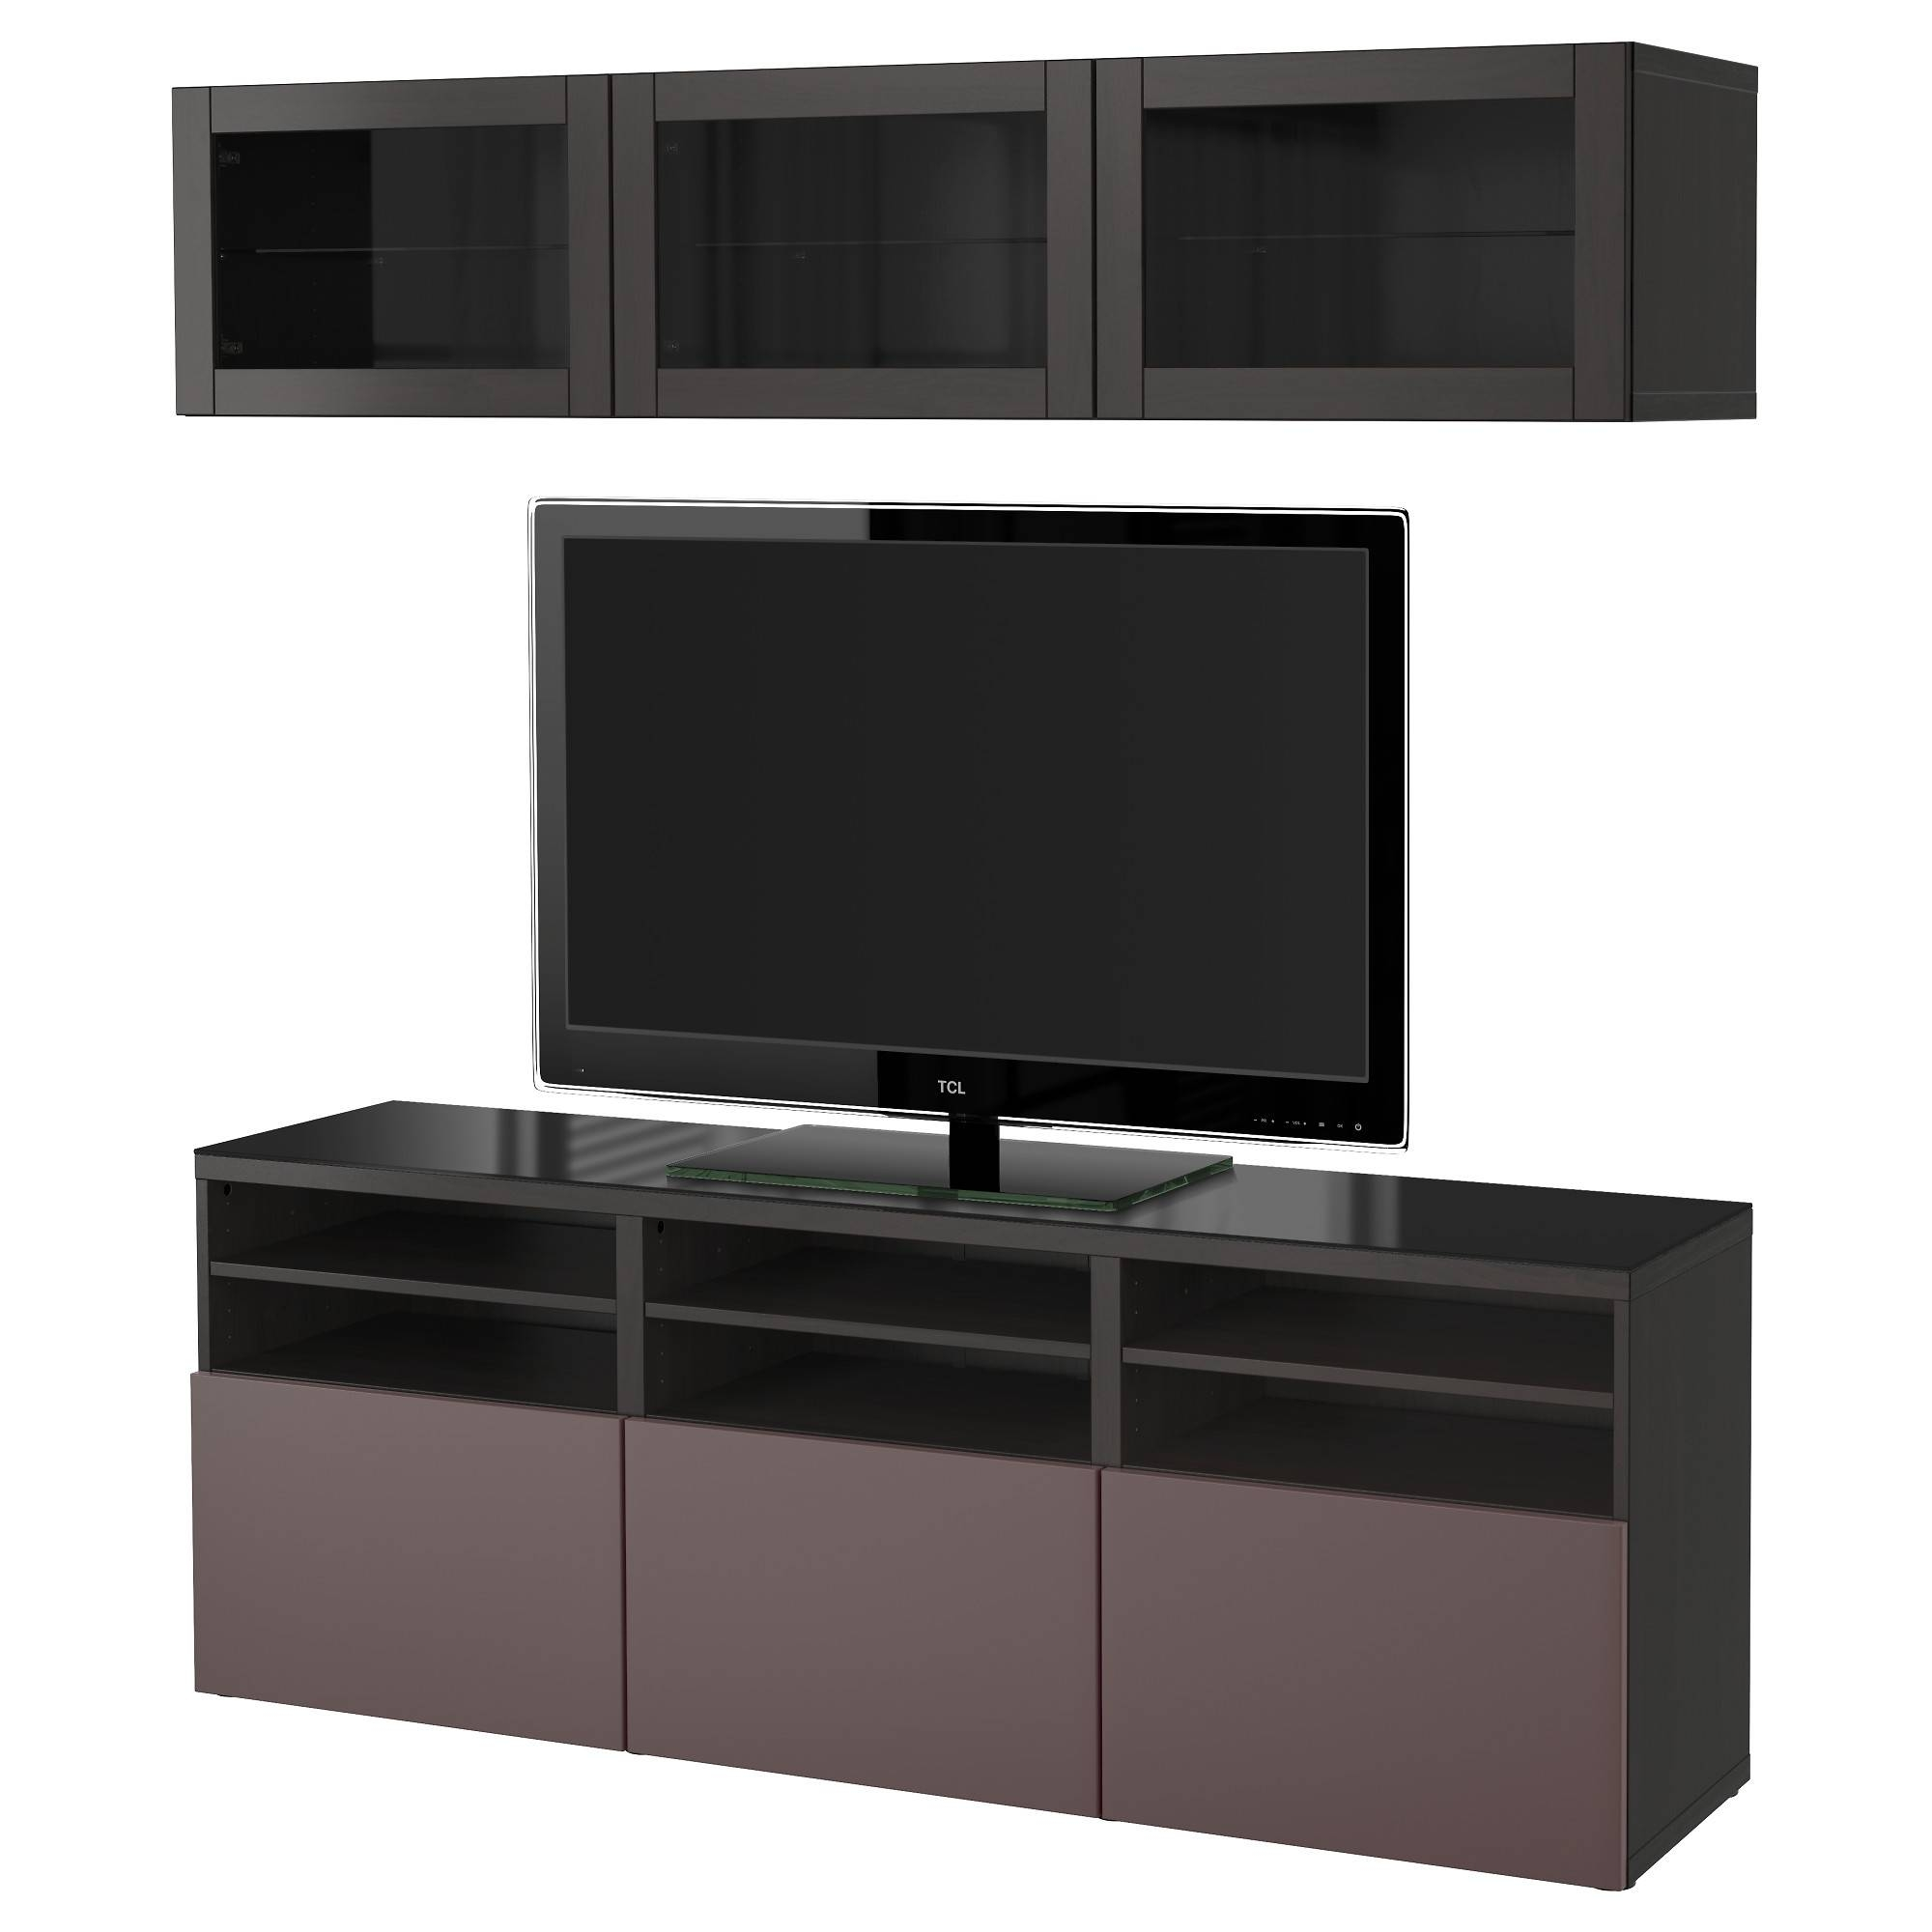 Large Tv Cabinets & Units | Ikea Dublin In Tv Cabinets With Storage (View 6 of 15)